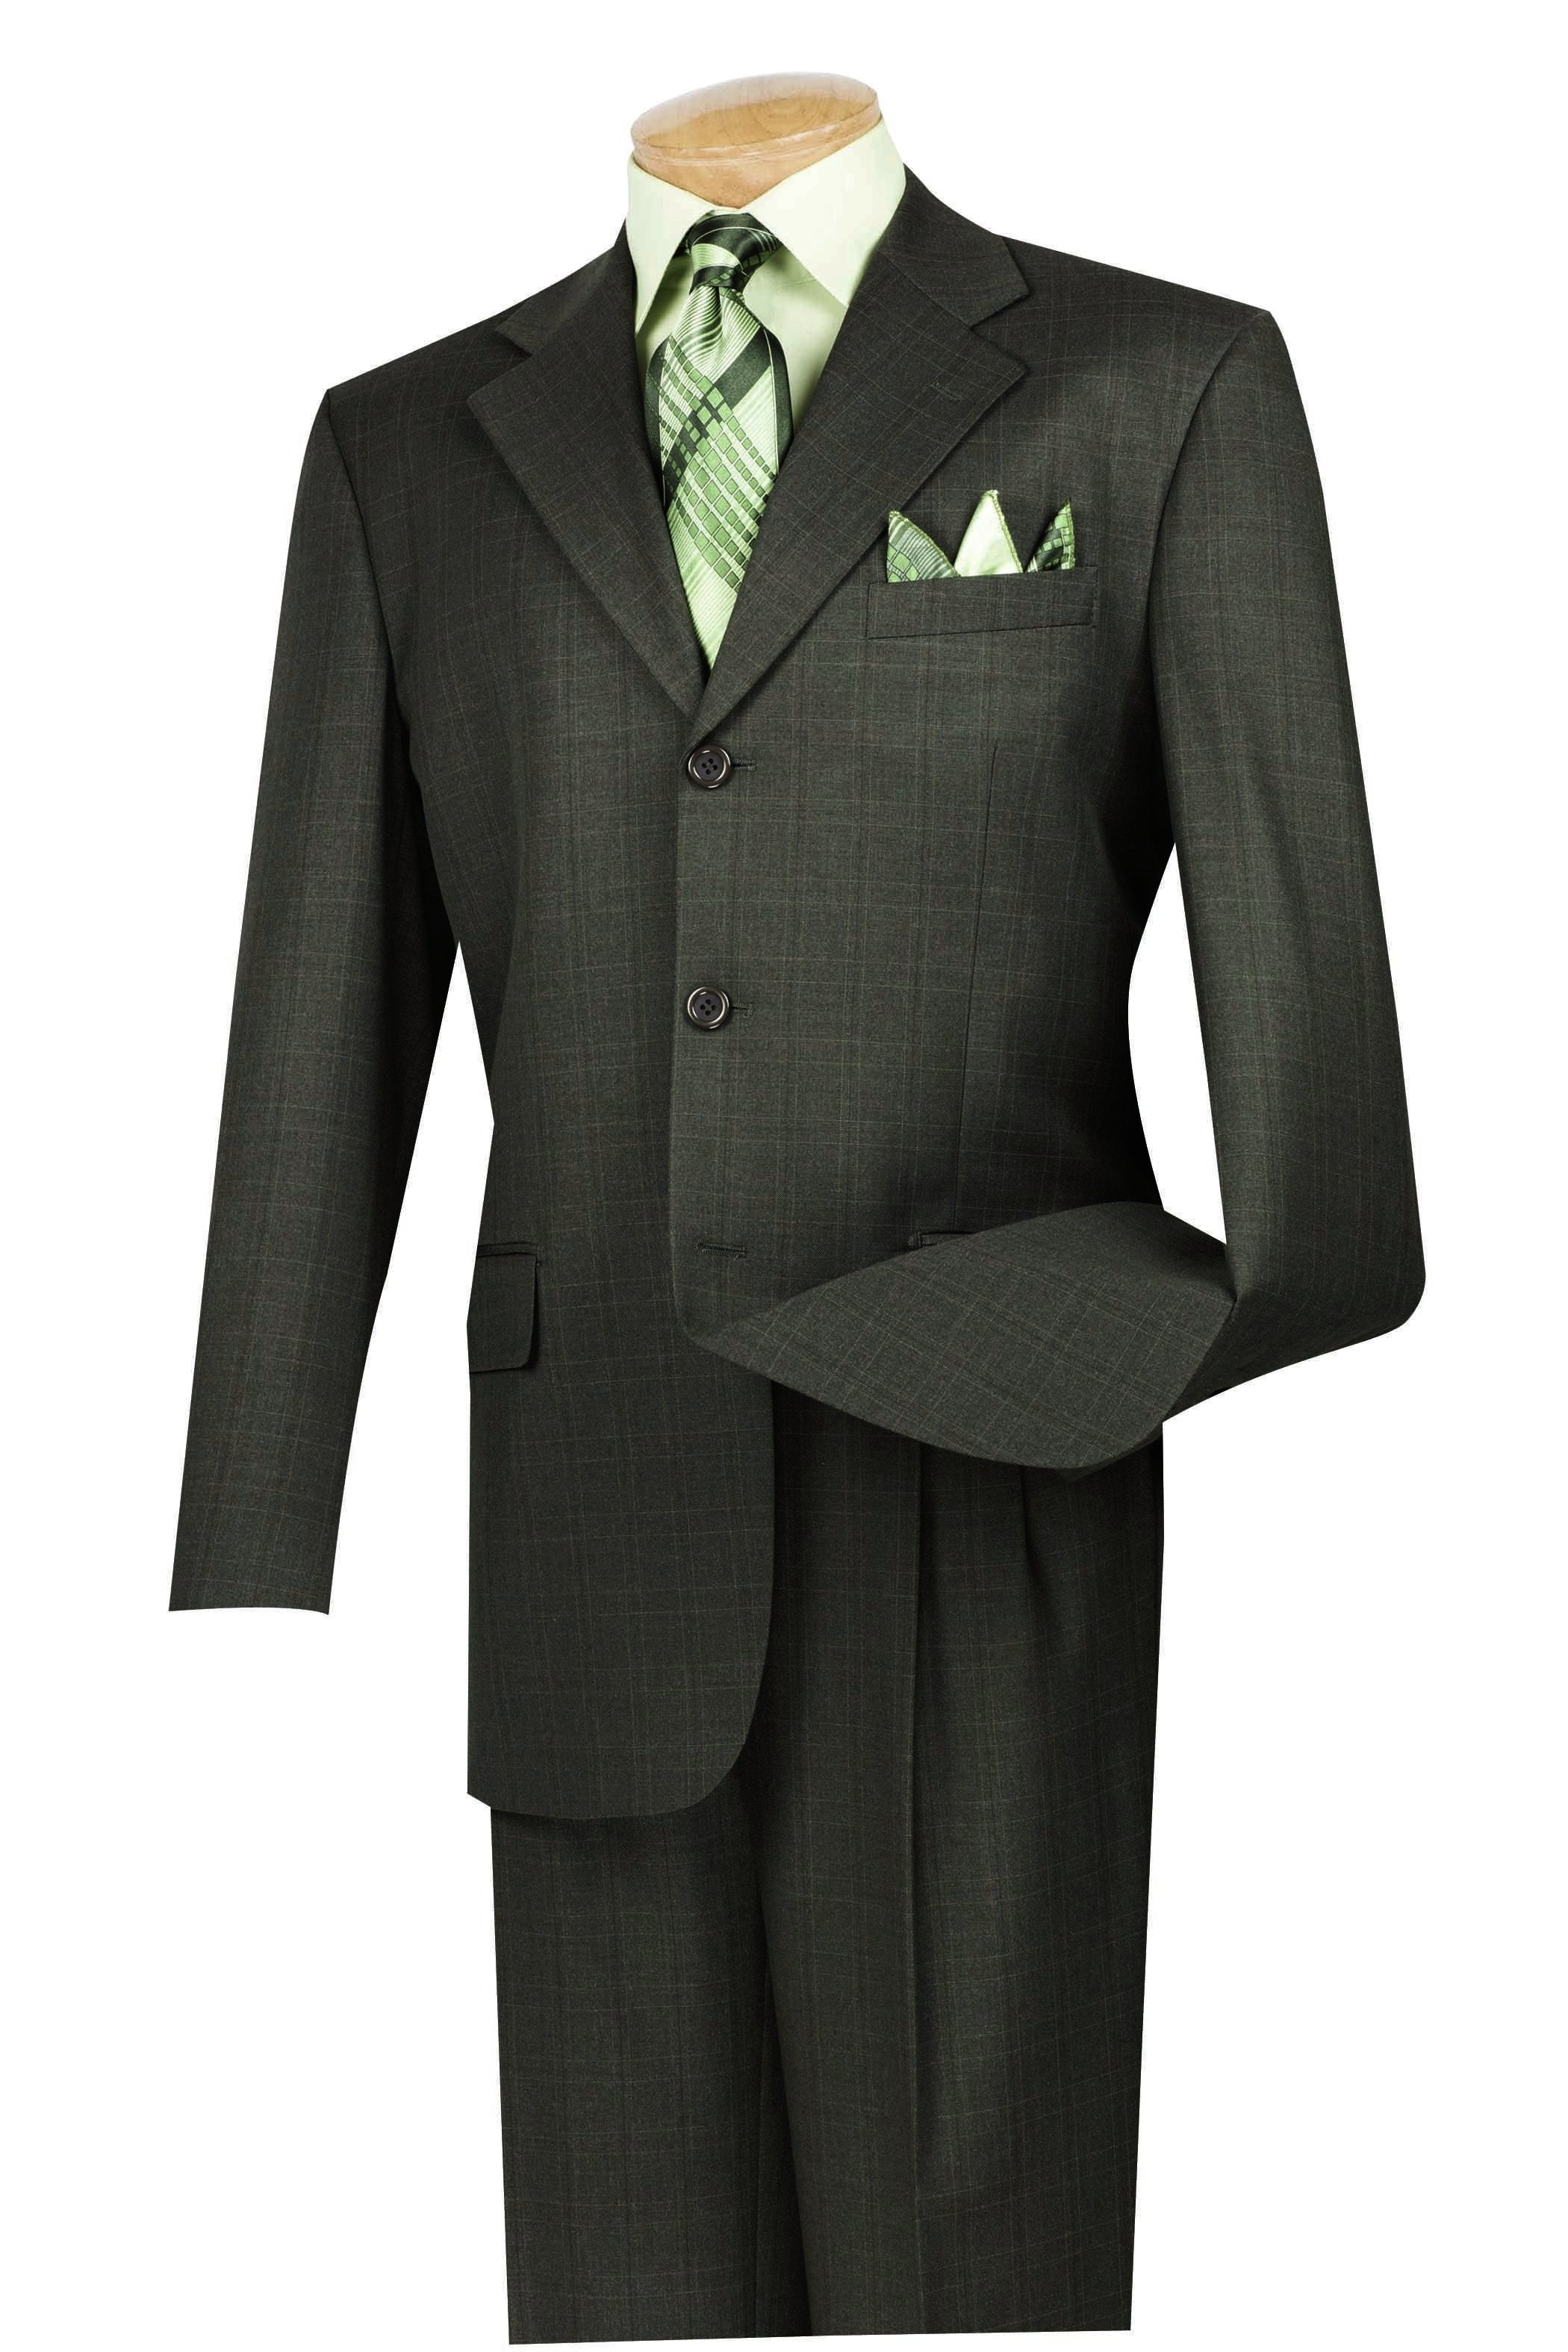 1940s Zoot Suit History & Buy Modern Zoot Suits Mens Regular Fit Windowpane Suit 2 Piece 3 Button in Dark Olive - 38 Short - 32 Waist  Olive $356.00 AT vintagedancer.com